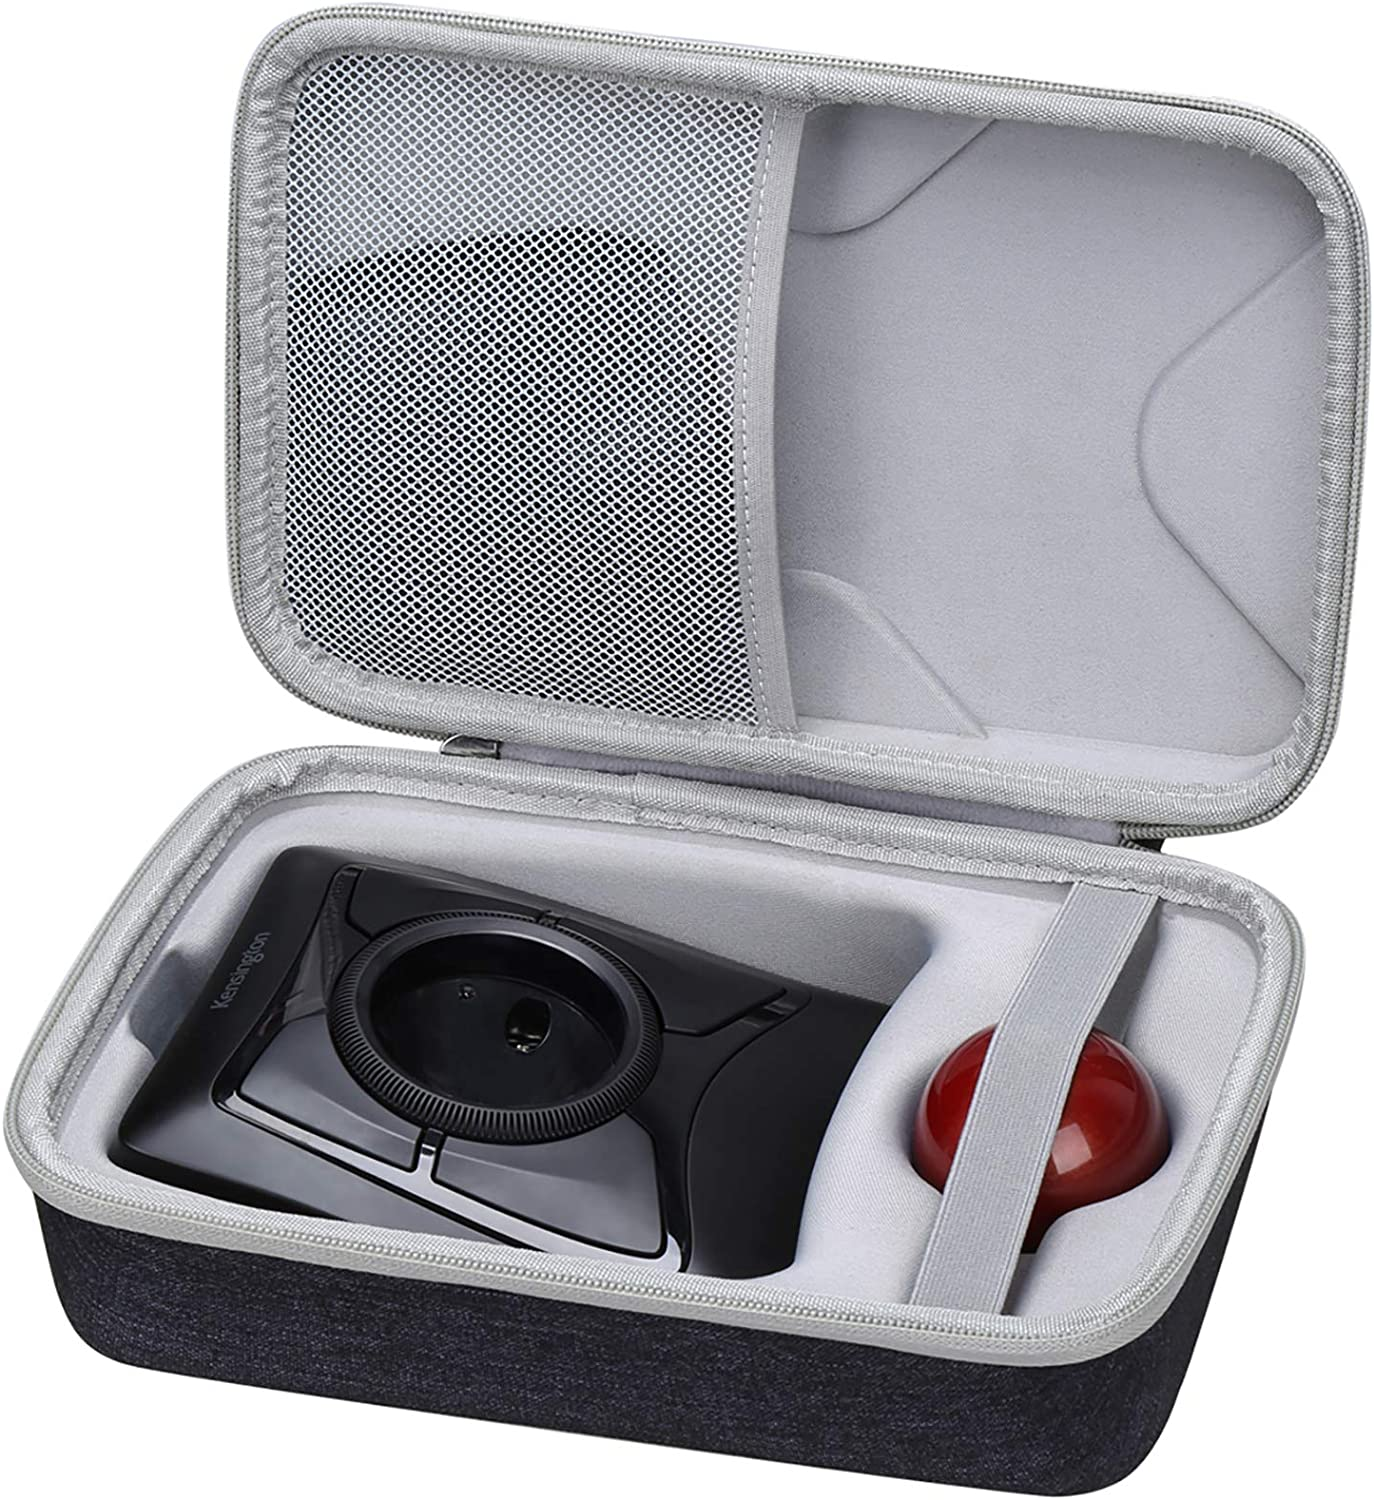 Aproca Hard Storage At Max 62% OFF the price Travel Case for Wireless Expert W Kensington